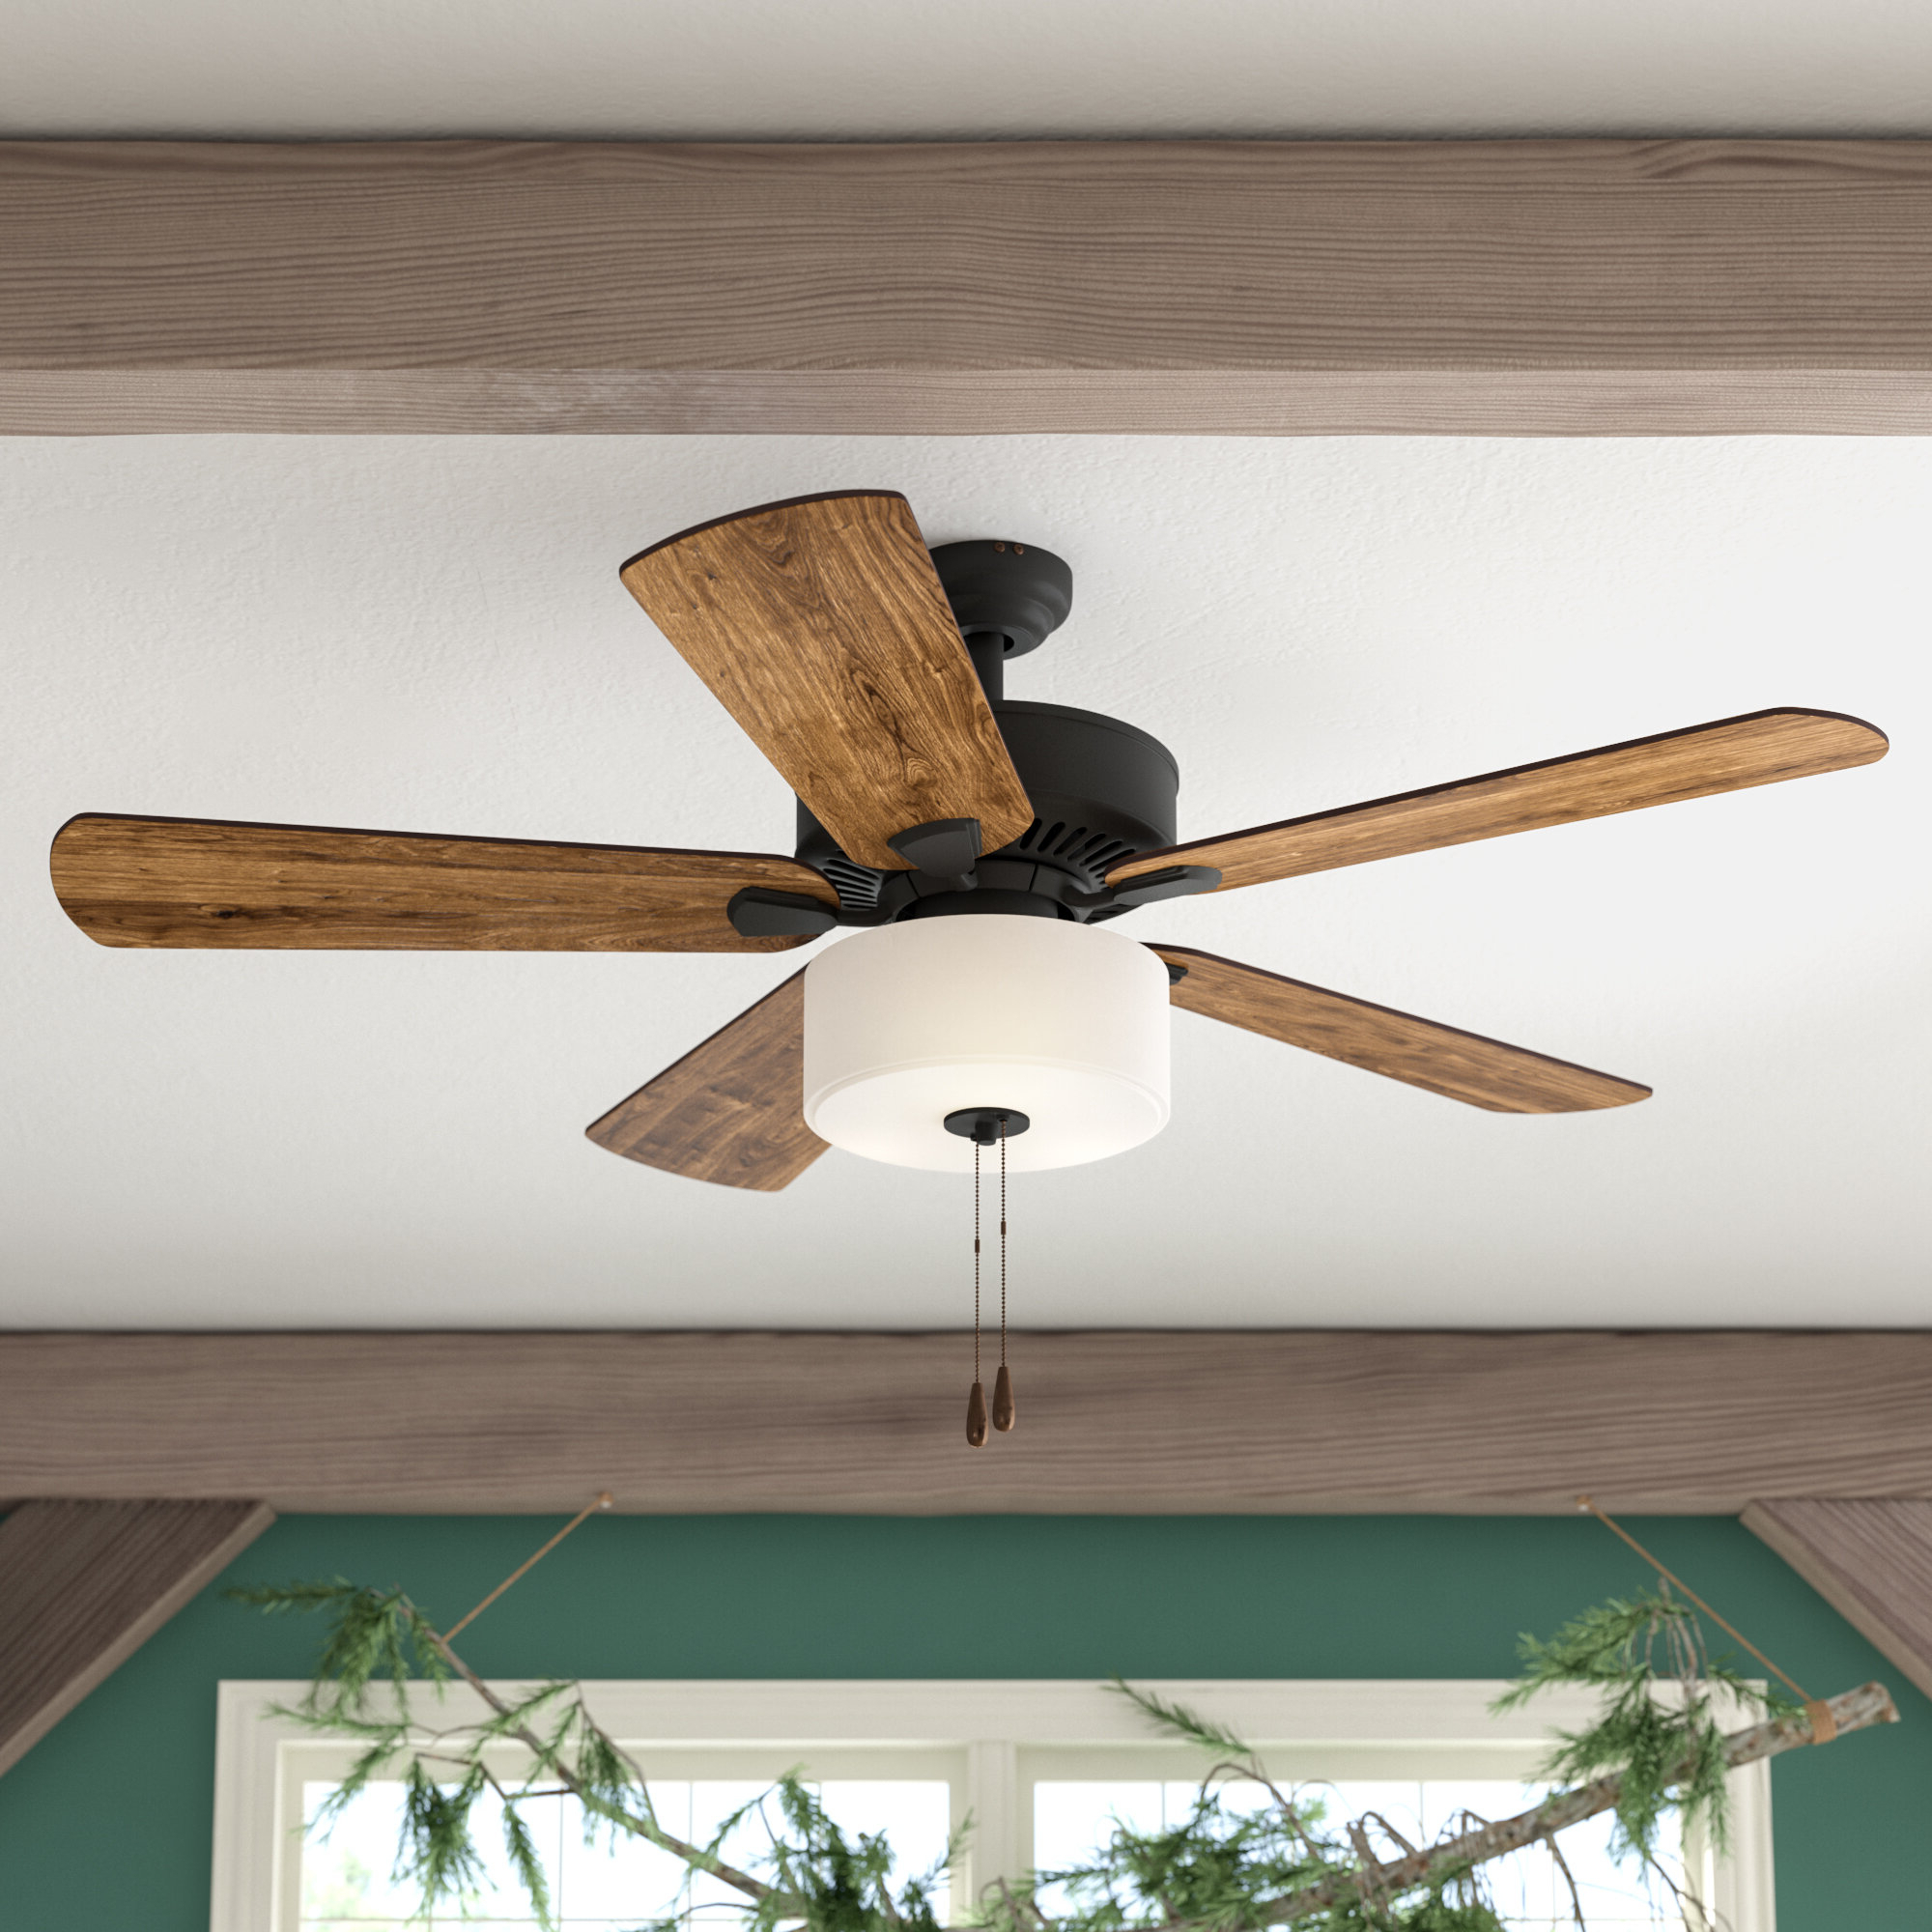 "Fashionable O'hanlon 5 Blade Led Ceiling Fans In 52"" Sina 5 Blade Ceiling Fan, Light Kit Included (View 14 of 20)"